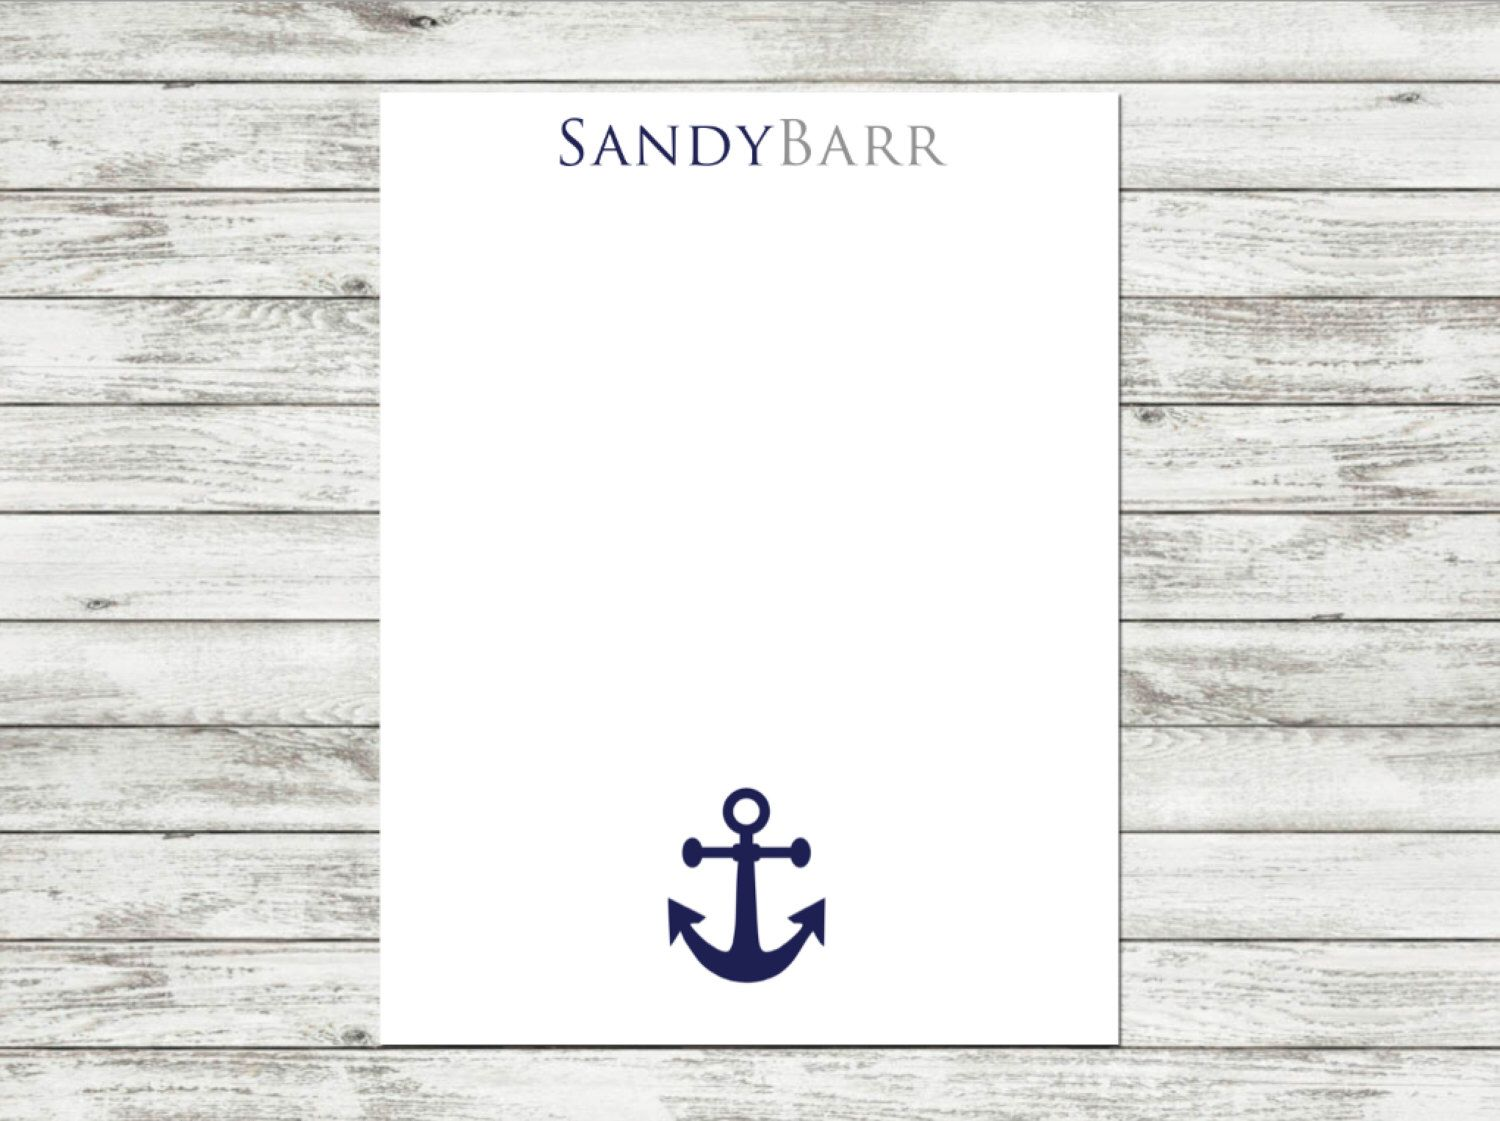 Personalized Notepad, Anchor Notepad, Nautical, Anchor, Nautical Notepad, Custom Notepad, Beach, Beach Notepad, Coastal, Coastal Notepad by SpyderWomanDesigns on Etsy https://www.etsy.com/listing/264626435/personalized-notepad-anchor-notepad